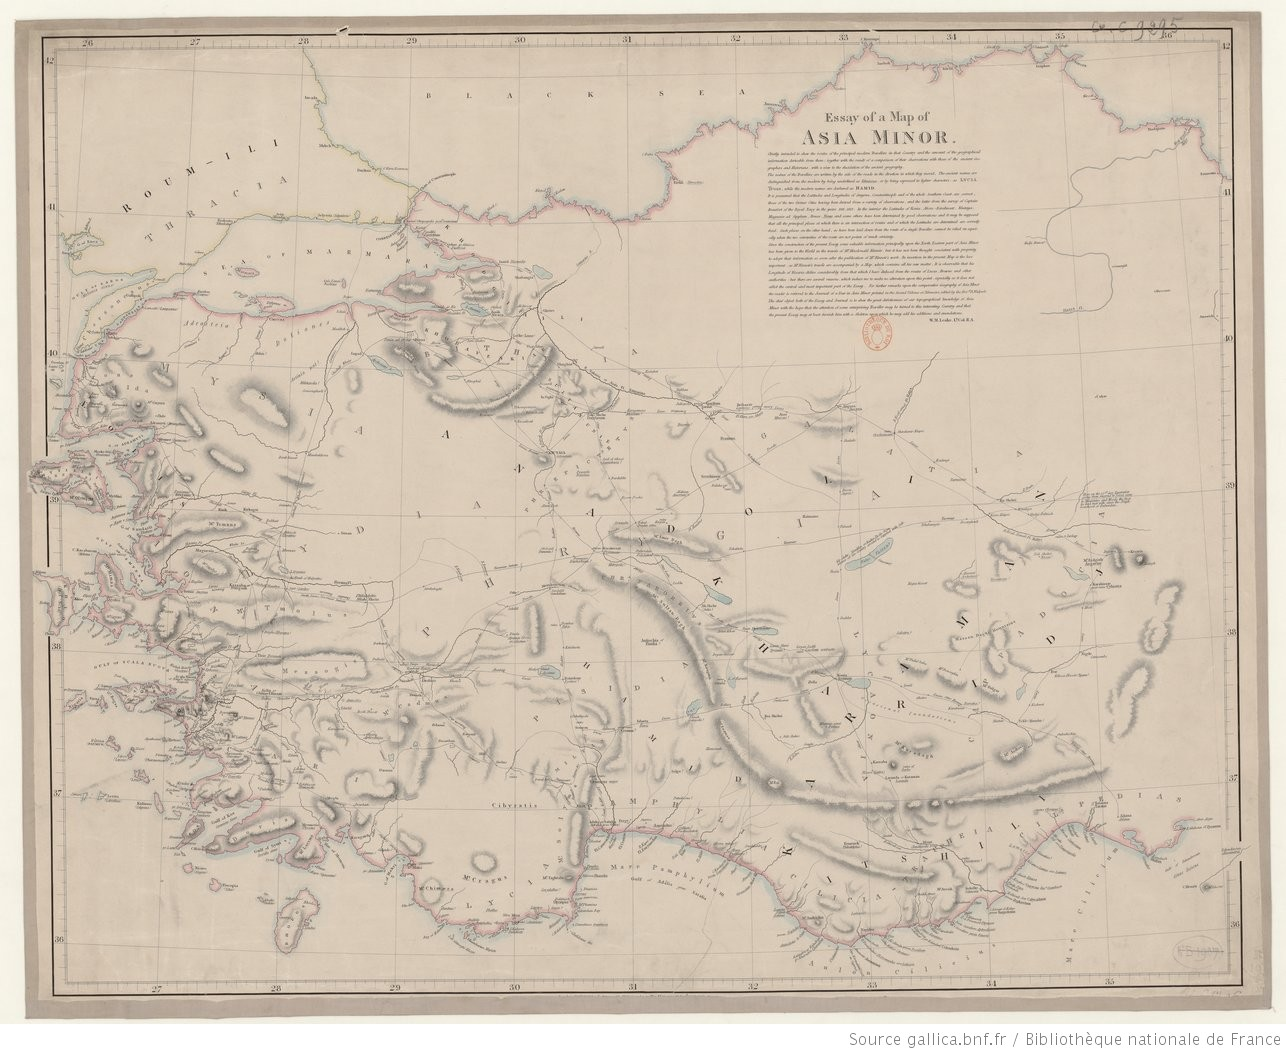 Show The Map Of Asia.Essay Of Map Of Asia Minor 1 1 143 000 Environ Chiefly